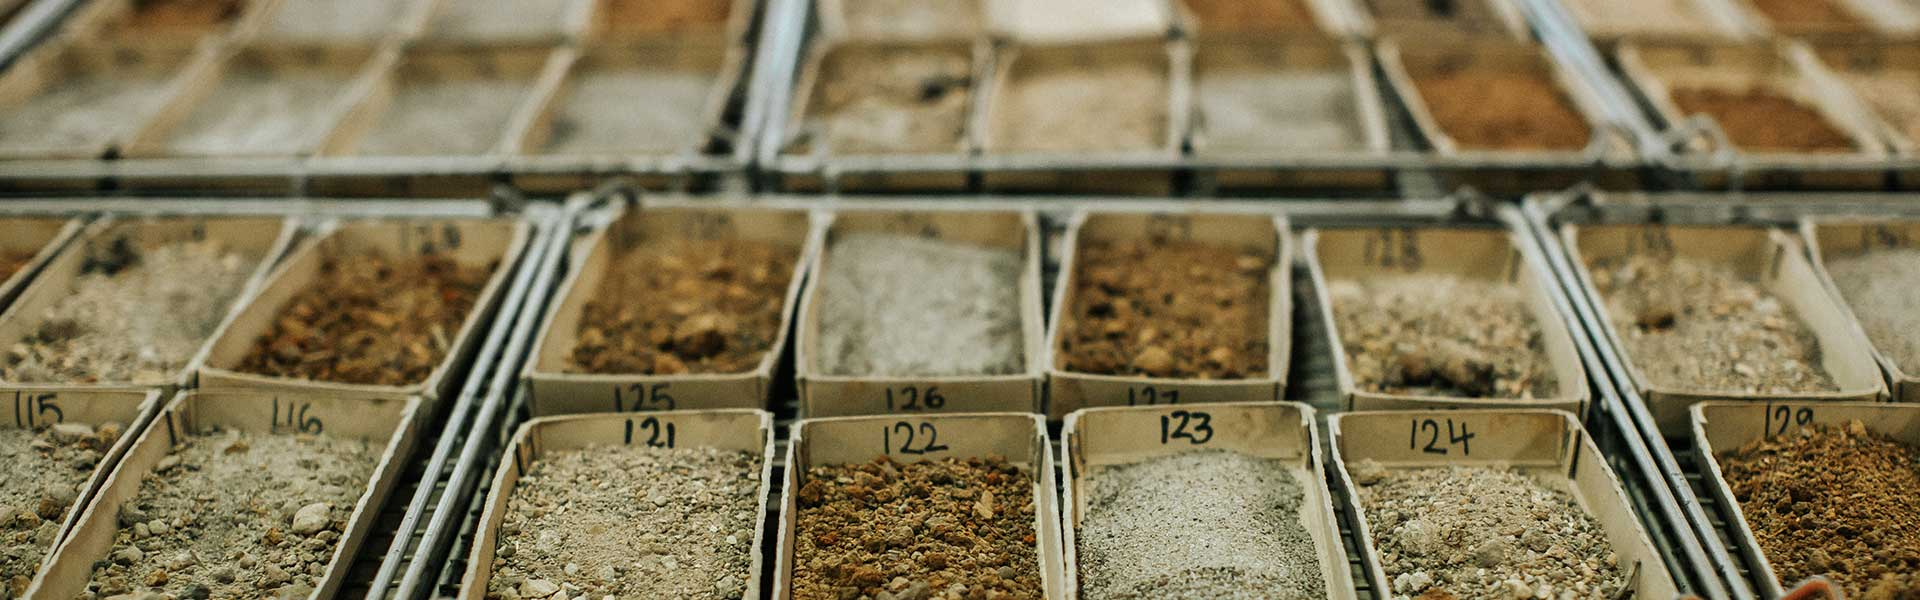 Soil being analysed at lab